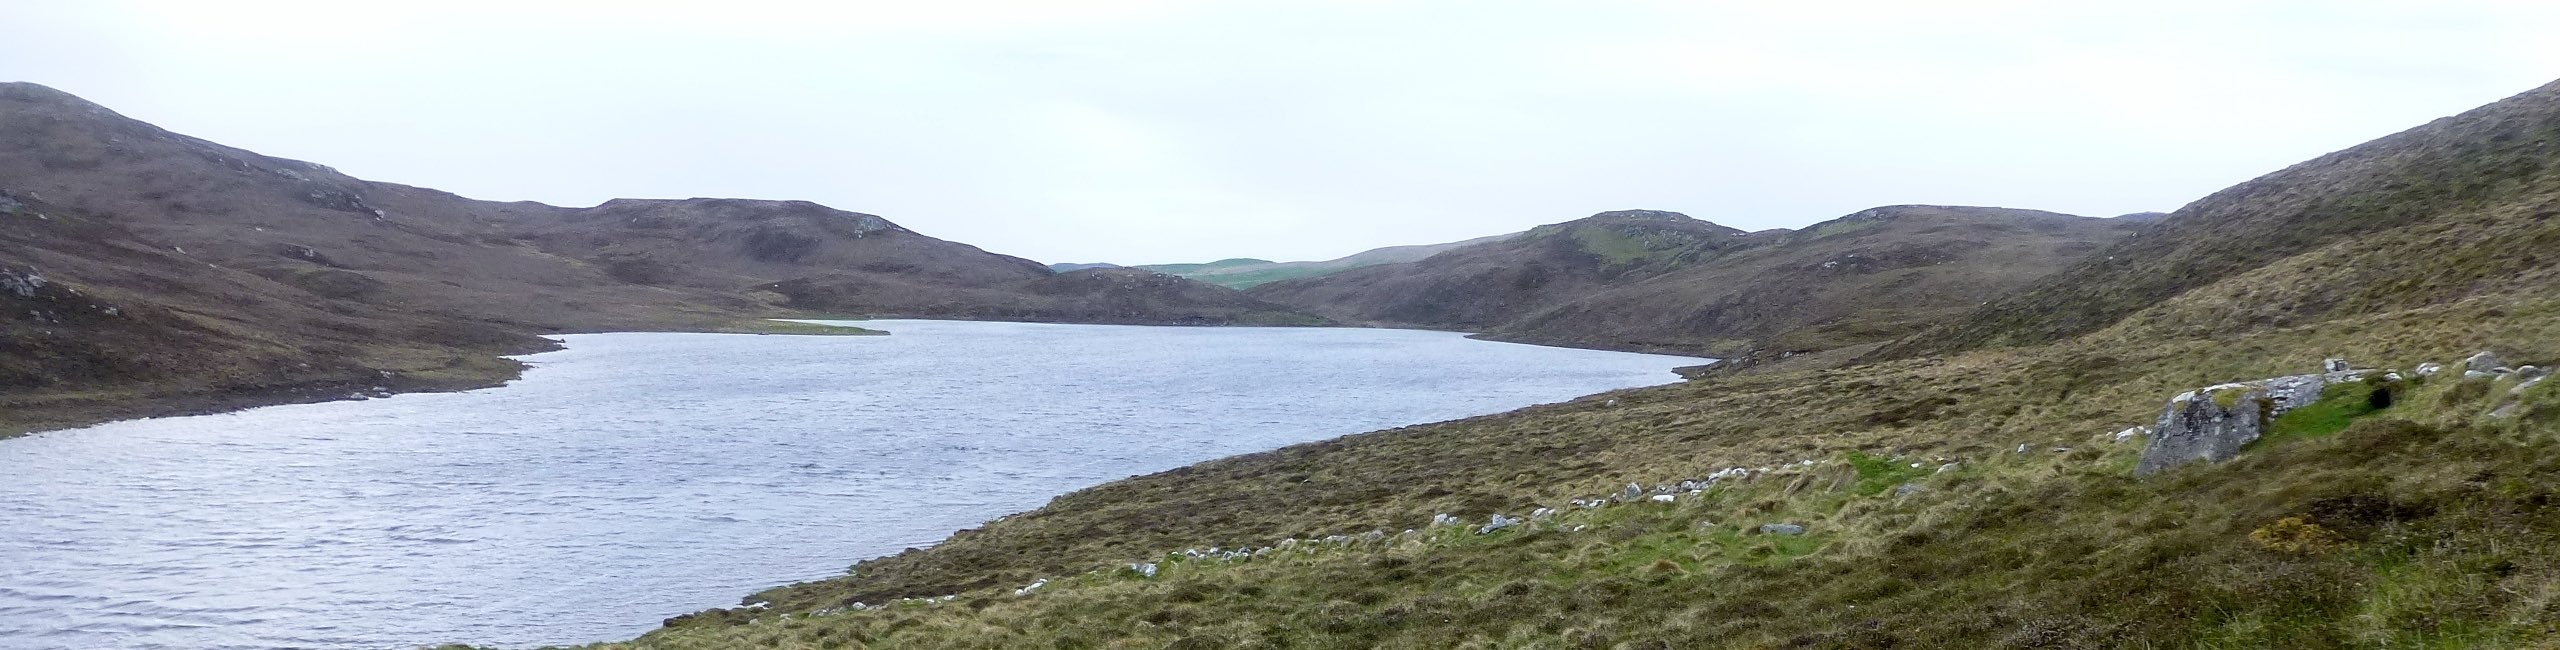 Bays Water